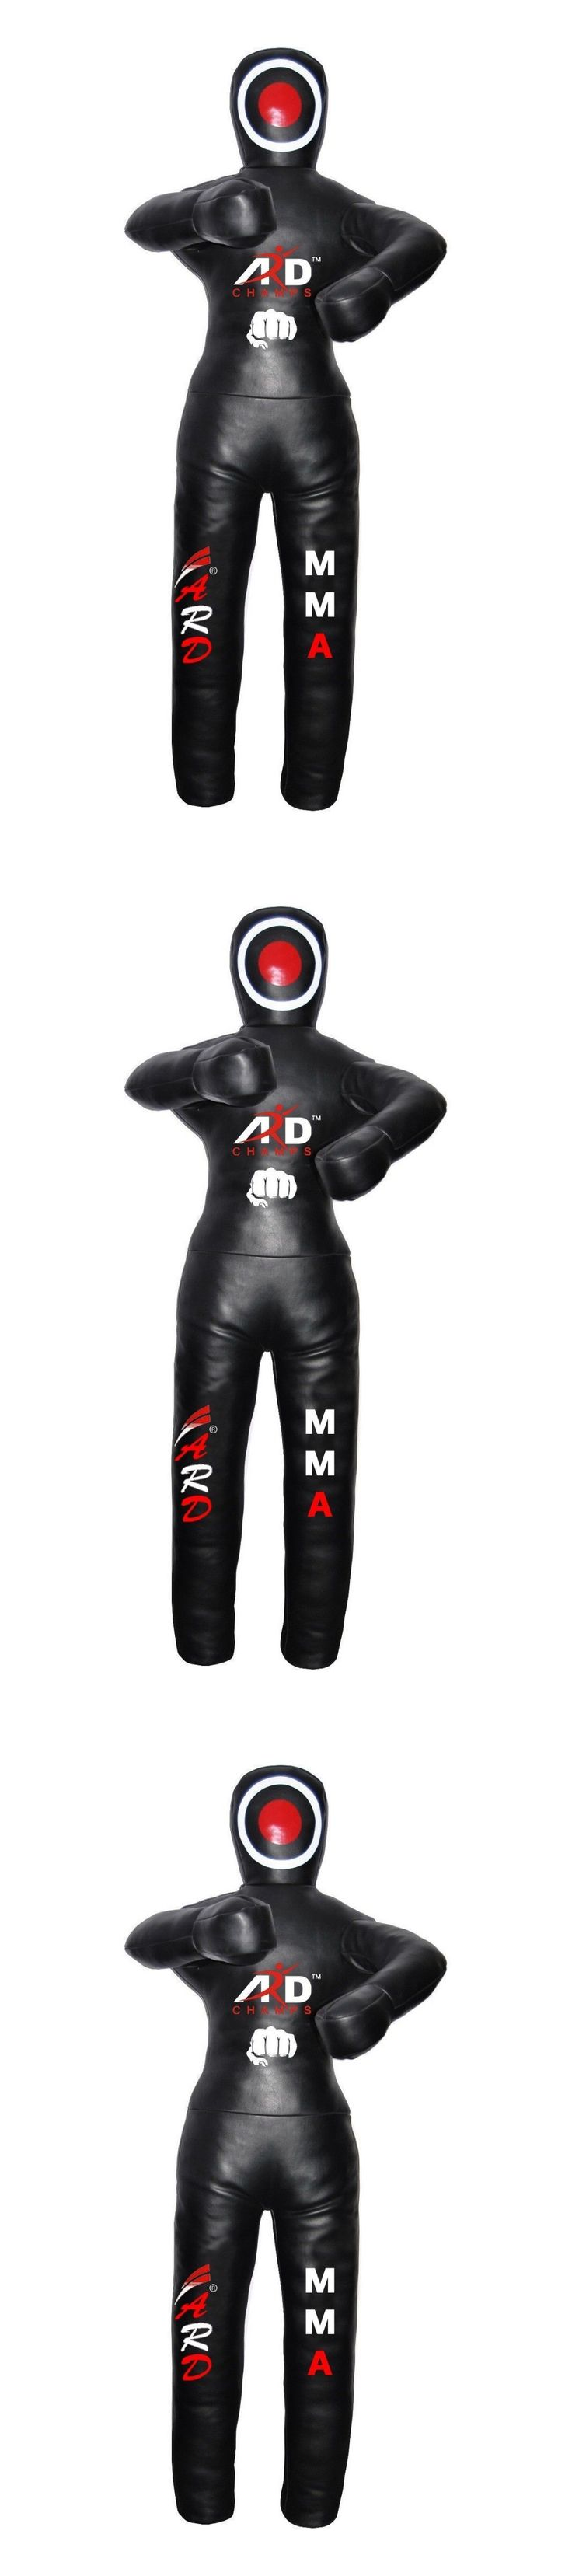 Dummies 179786: Brazilian Jiu Jitsu Grappling Dummy Artificial Leather Mma 59/ 5Ft And 70/ 6Ft BUY IT NOW ONLY: $85.99